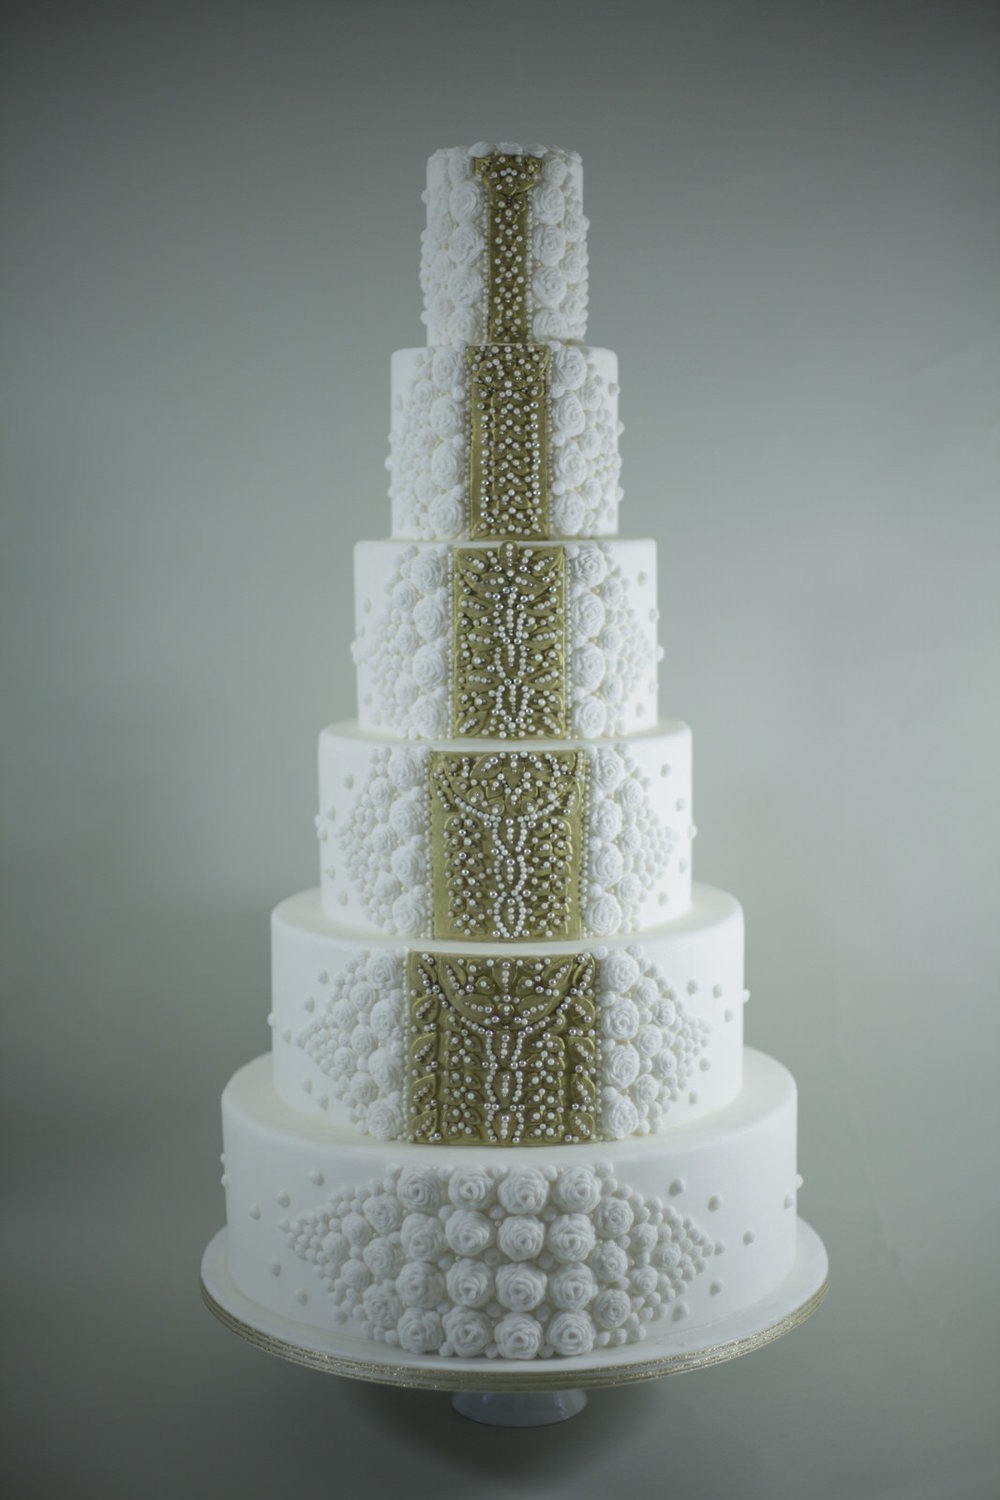 Majestic wedding cake